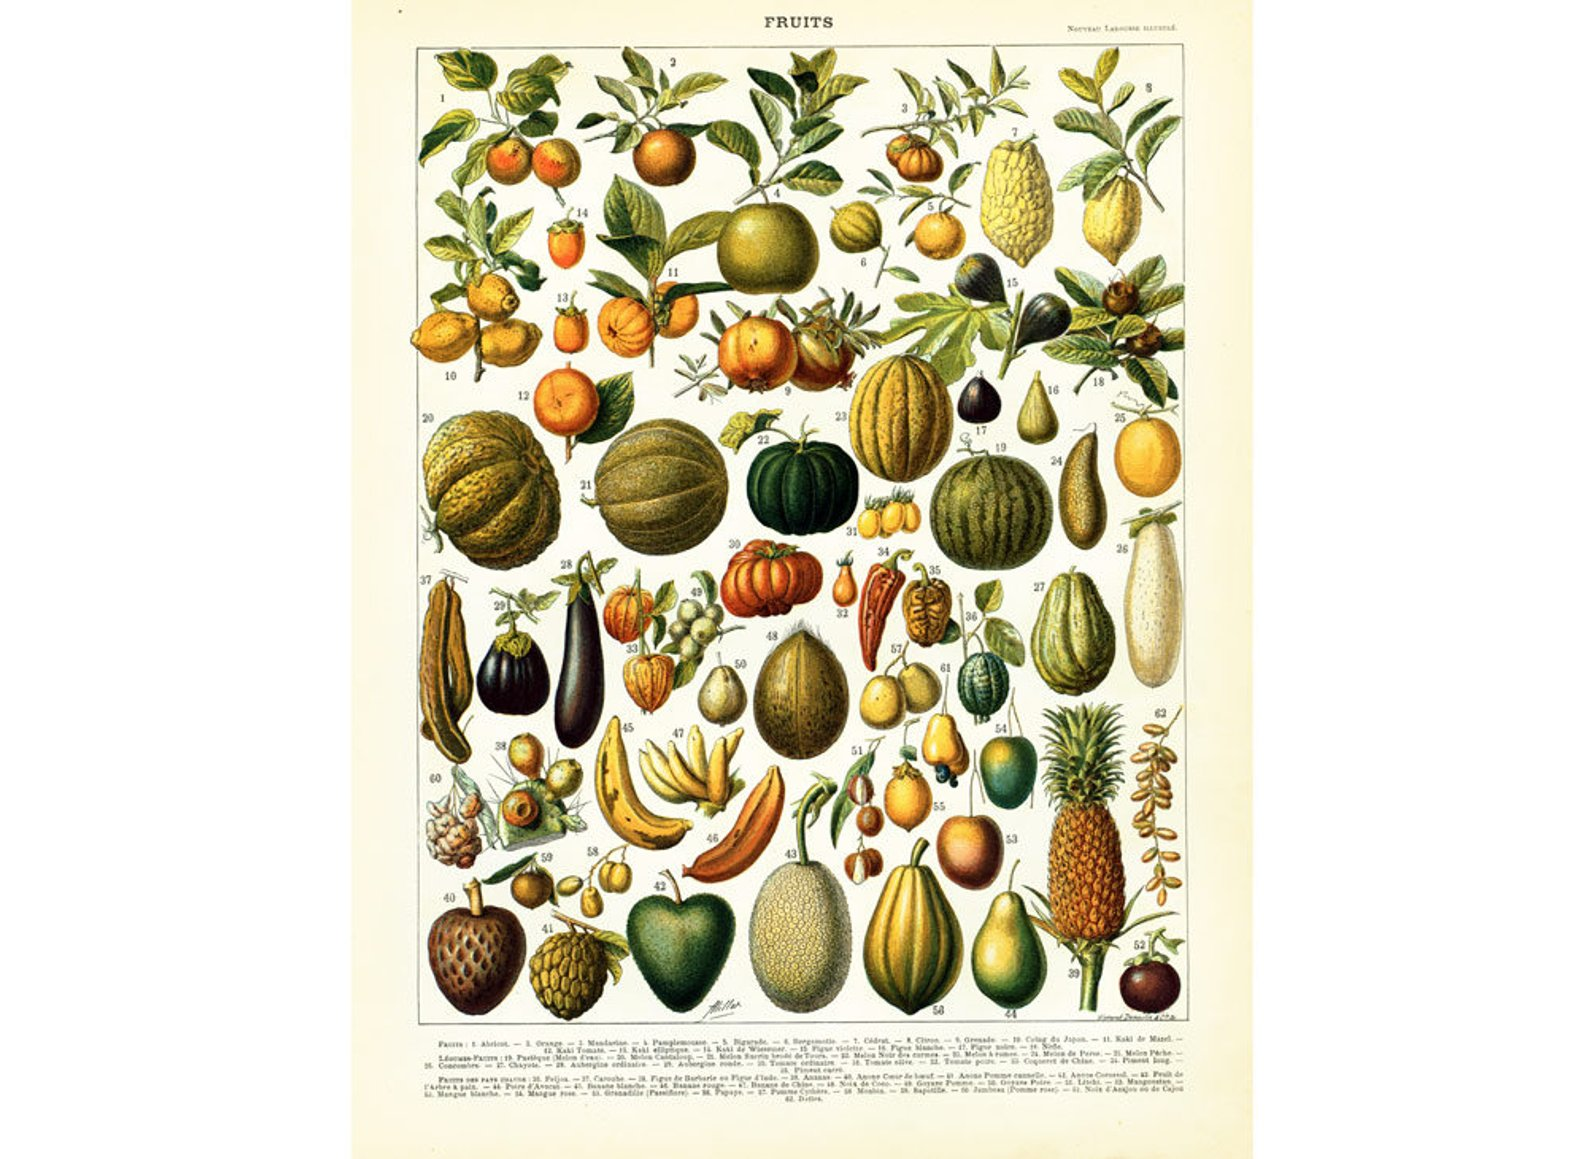 1897 Fruits and Avocado Print By So French Vintage